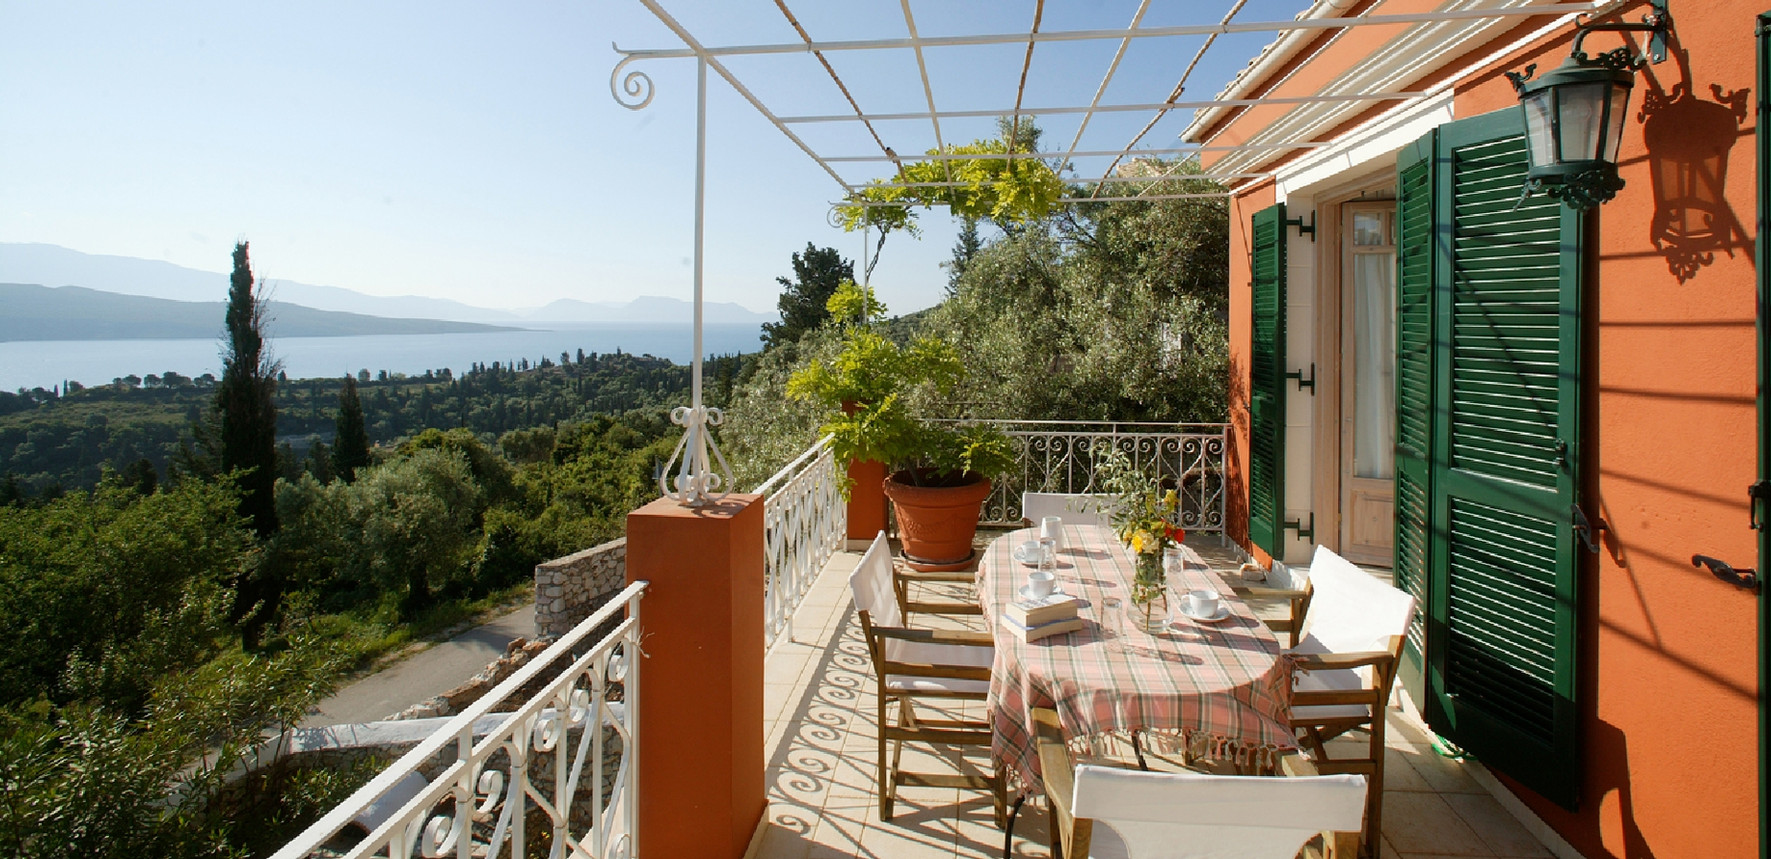 the balcony - villa Anthea Rossa